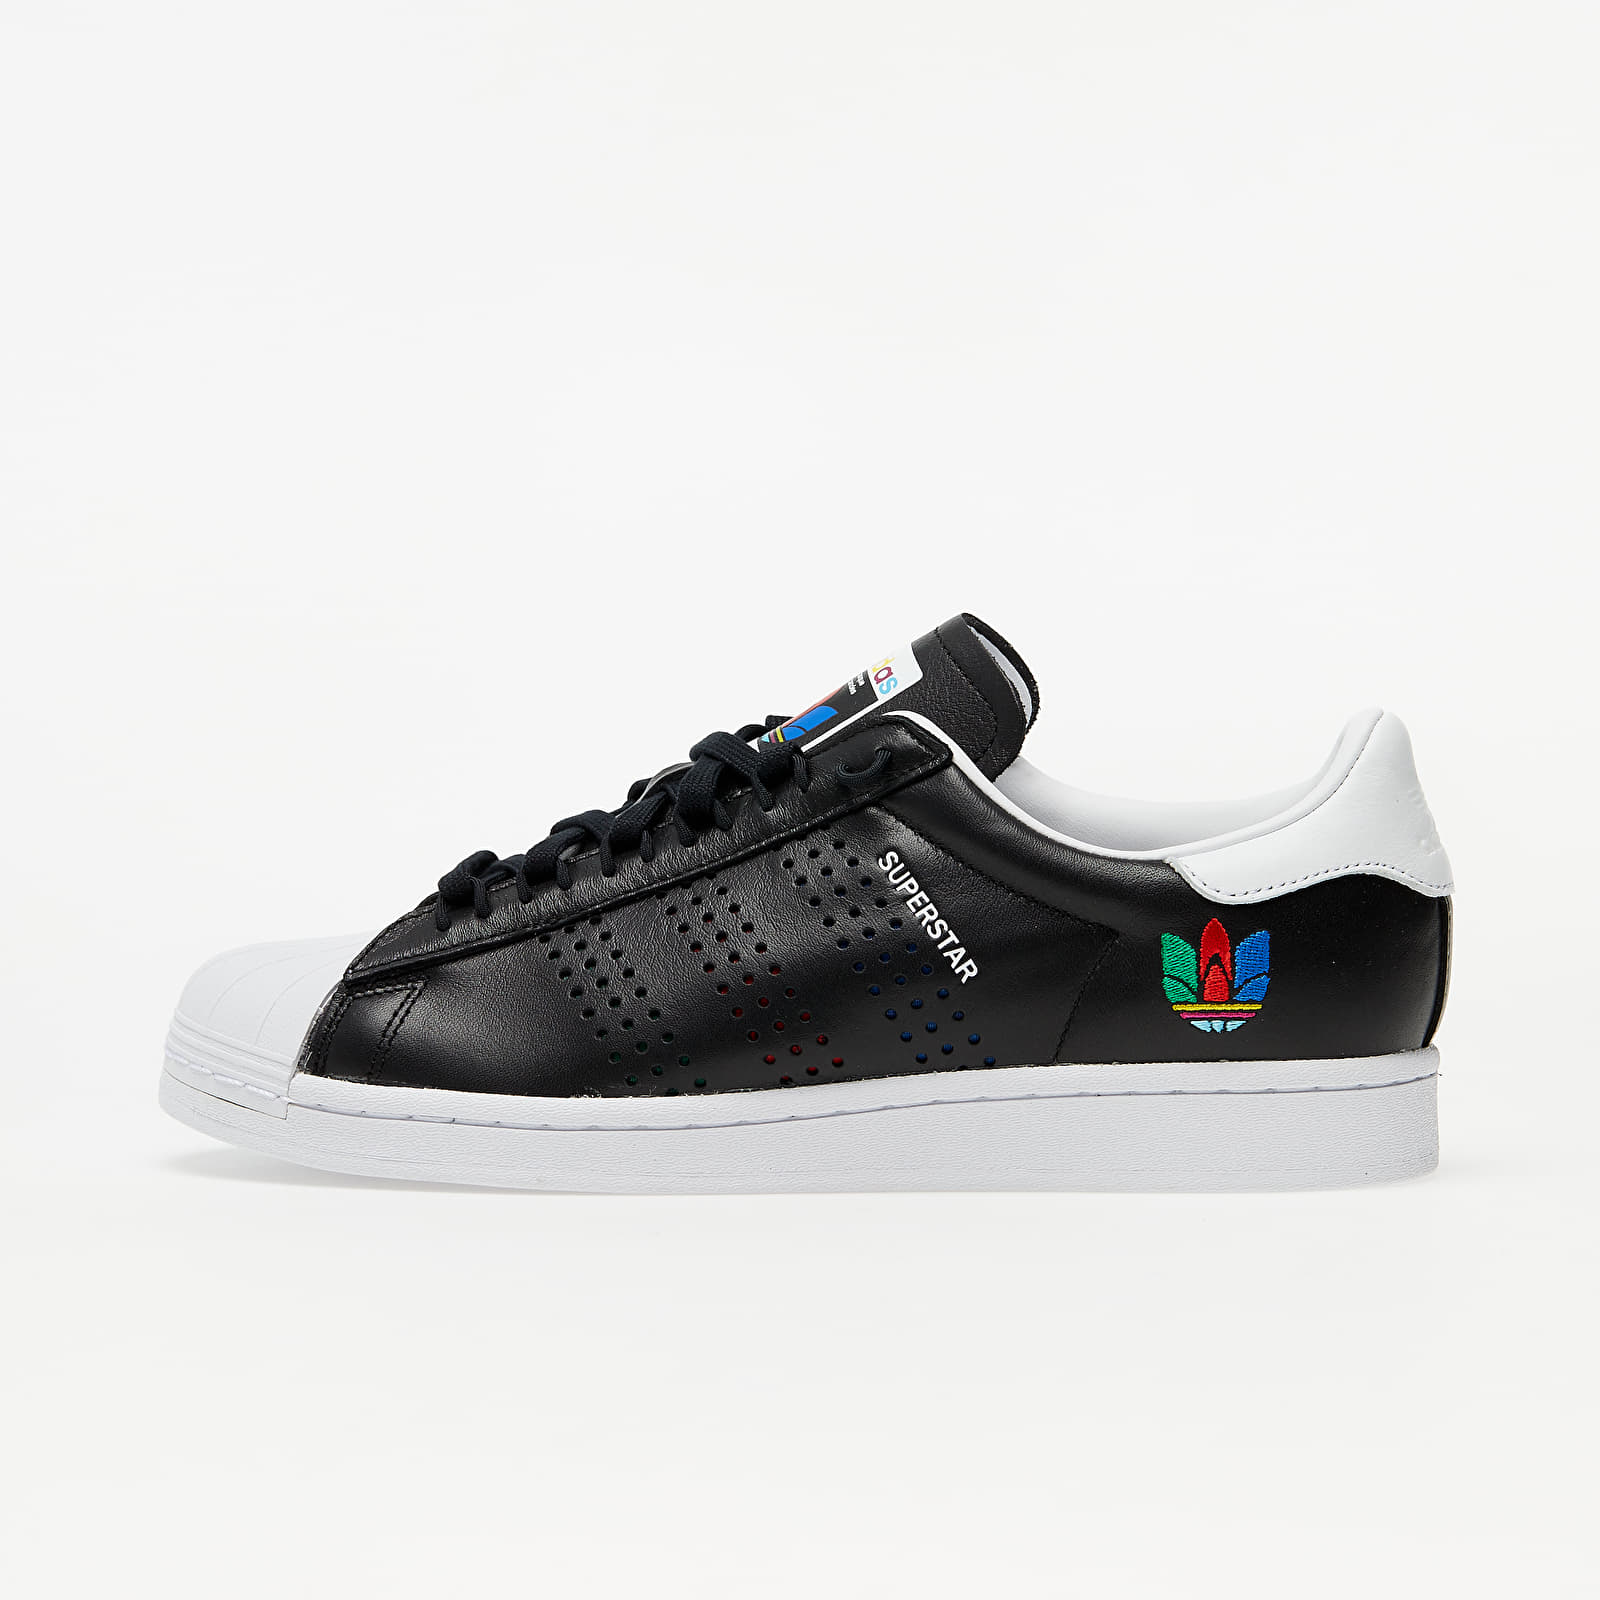 adidas Superstar Core Black/ Green/ Ftw White EUR 43 1/3